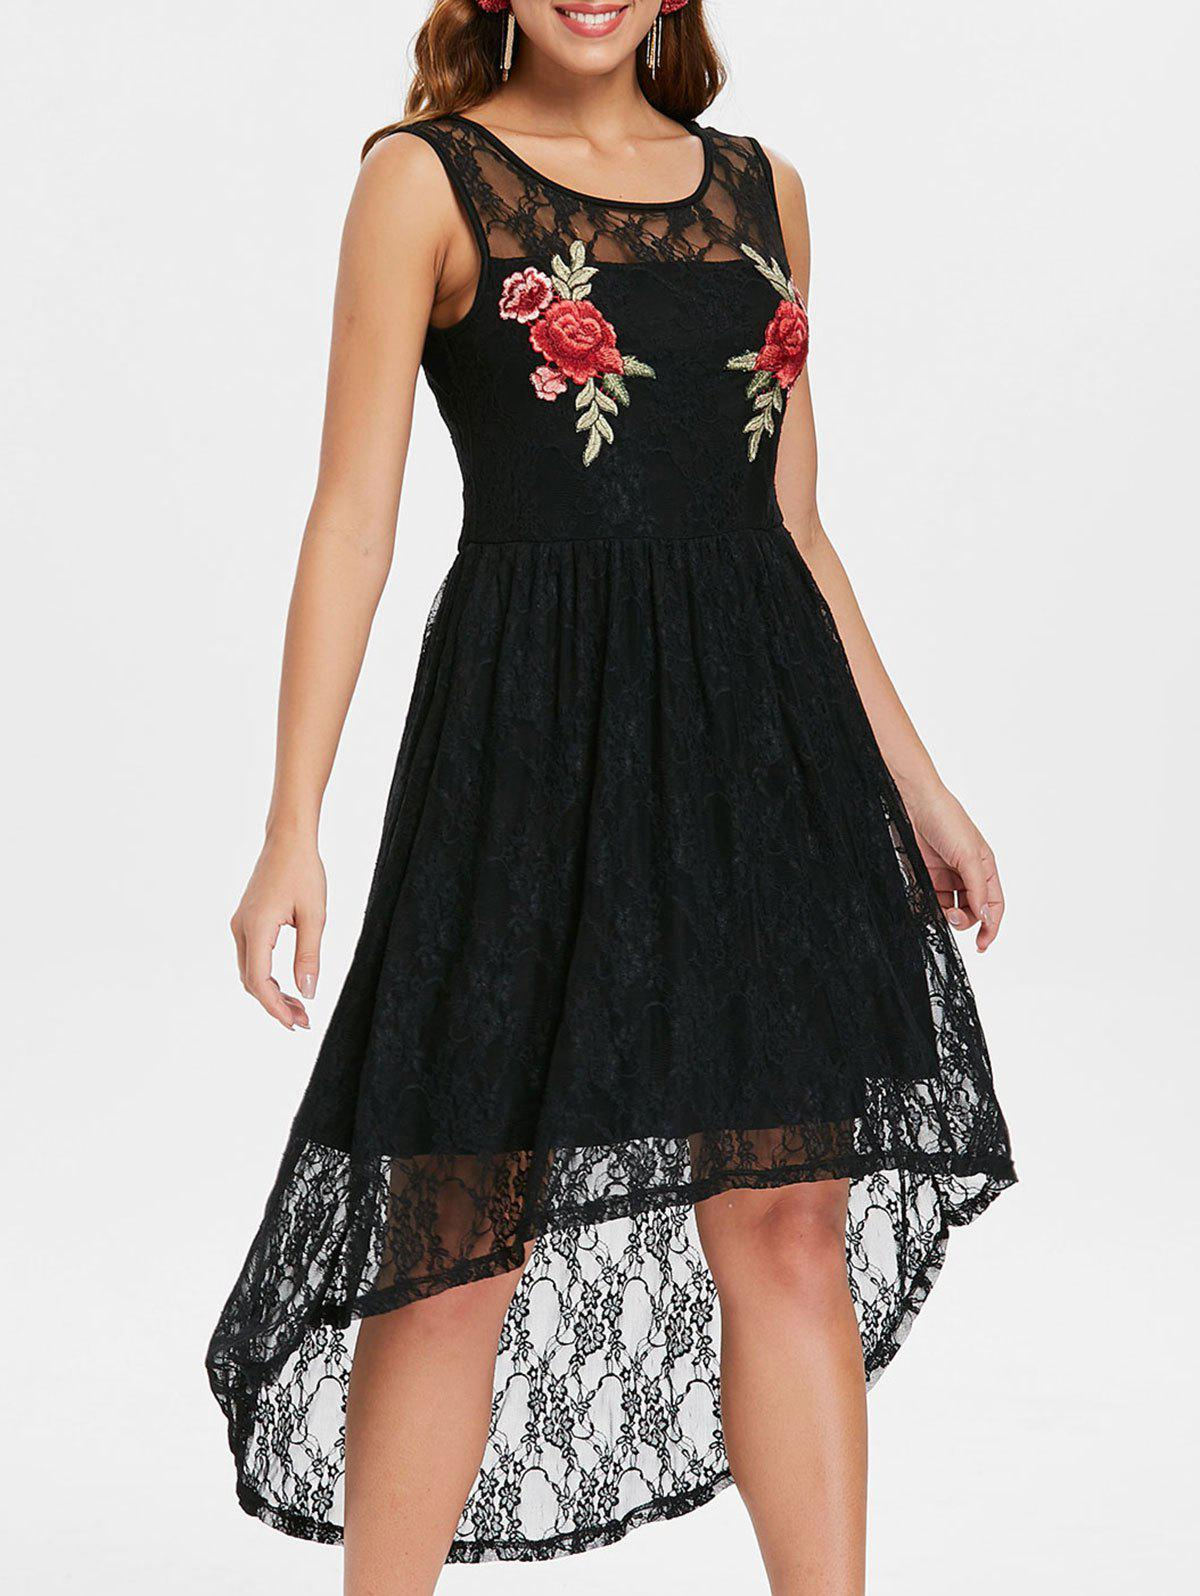 Floral Applique Asymmetrical Lace Dress - BLACK M